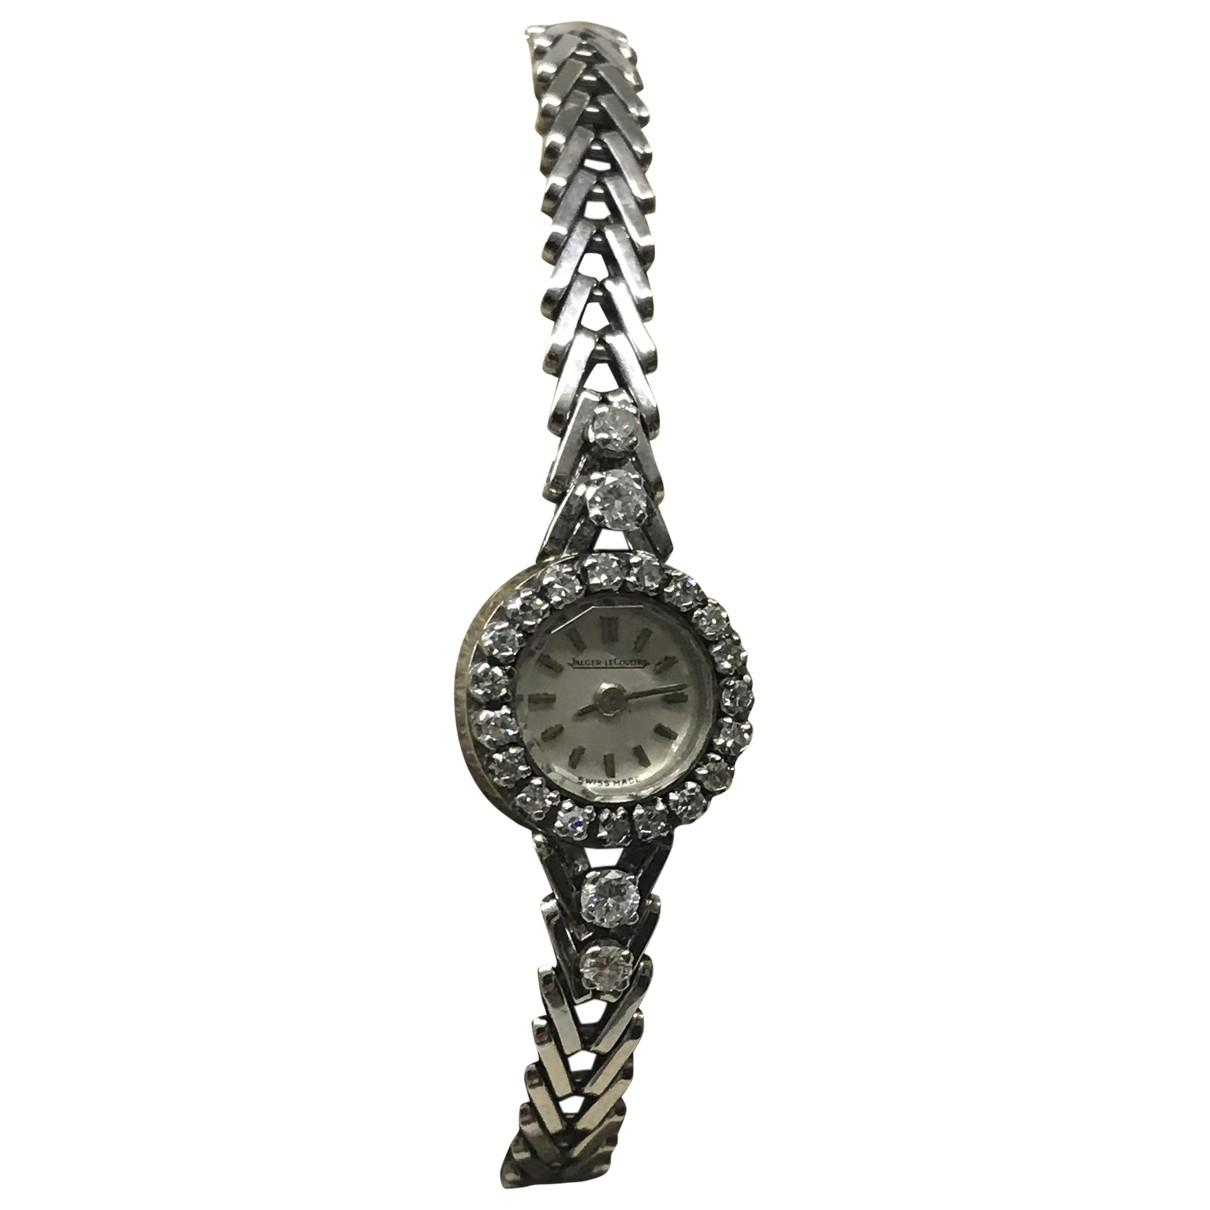 Jaeger-lecoultre Vintage Silver White gold watch for Women N